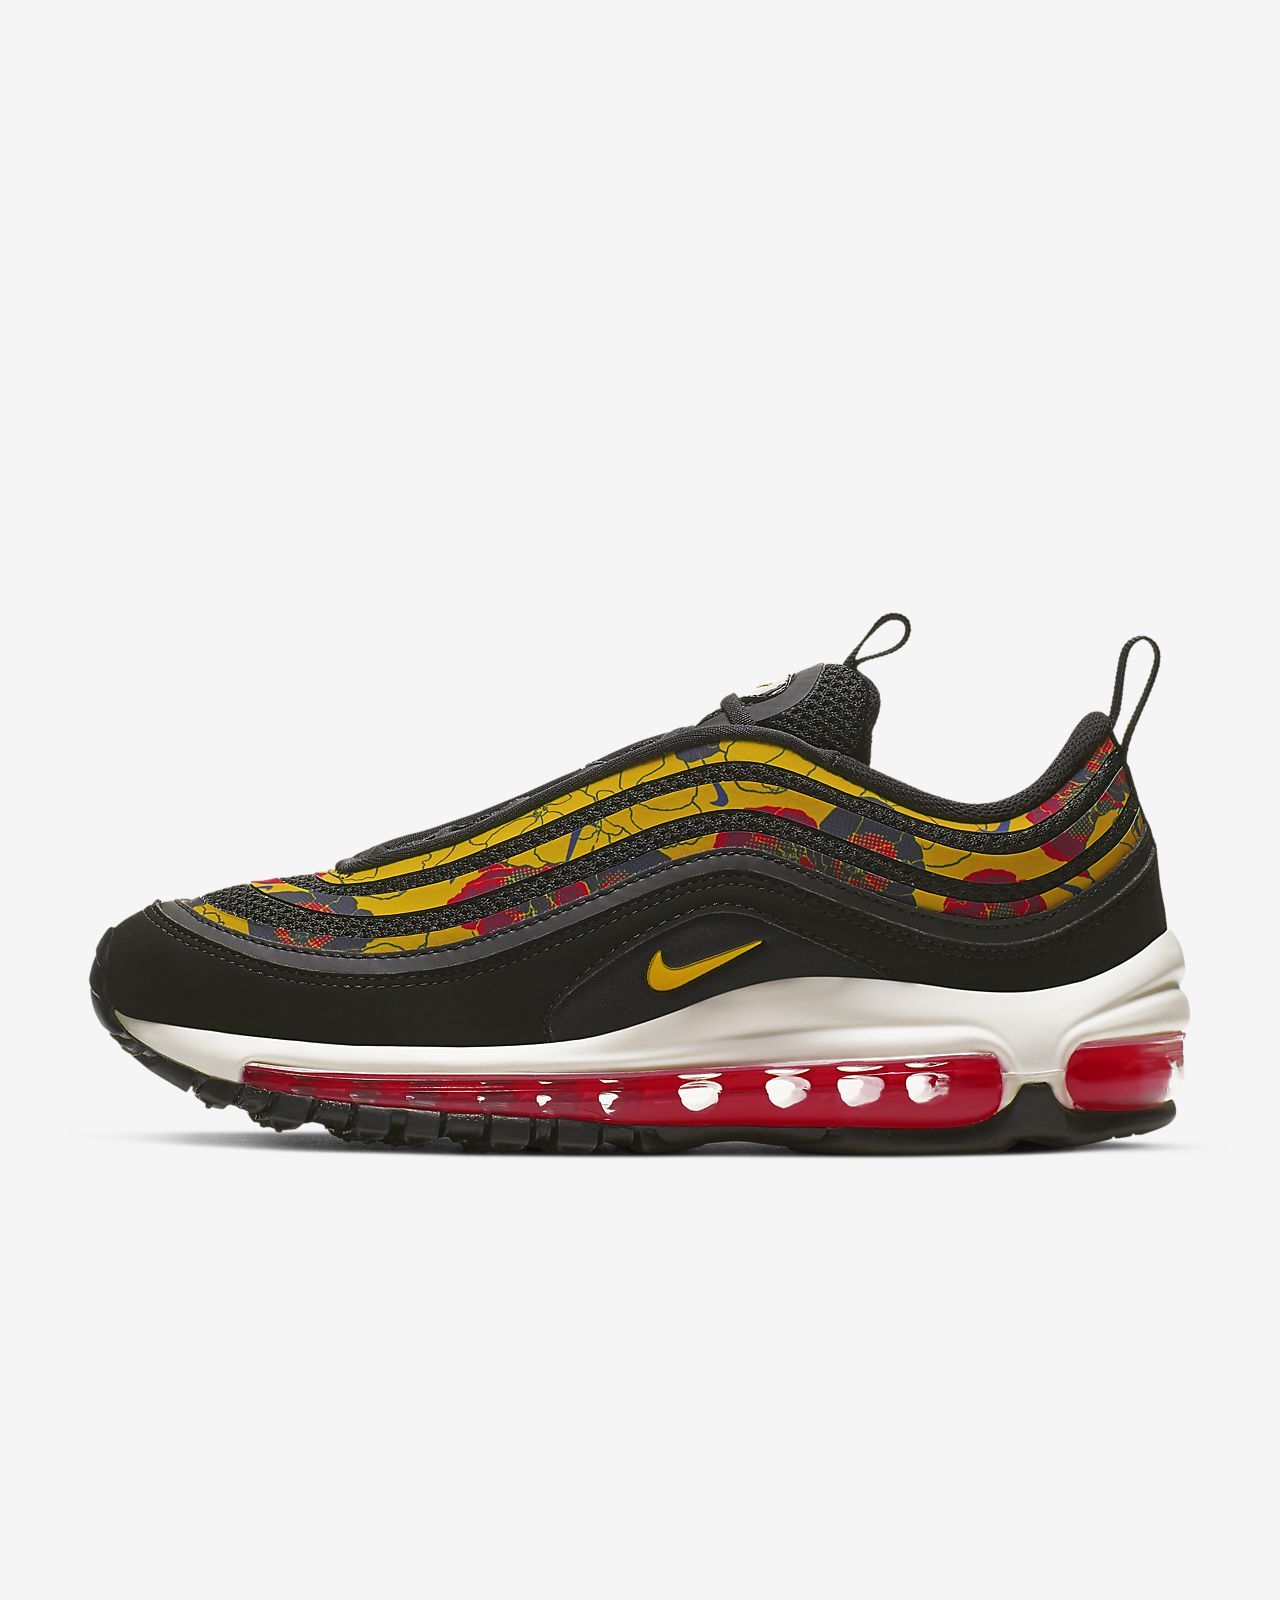 Nike Air Max 97 SE Floral Women's Shoe